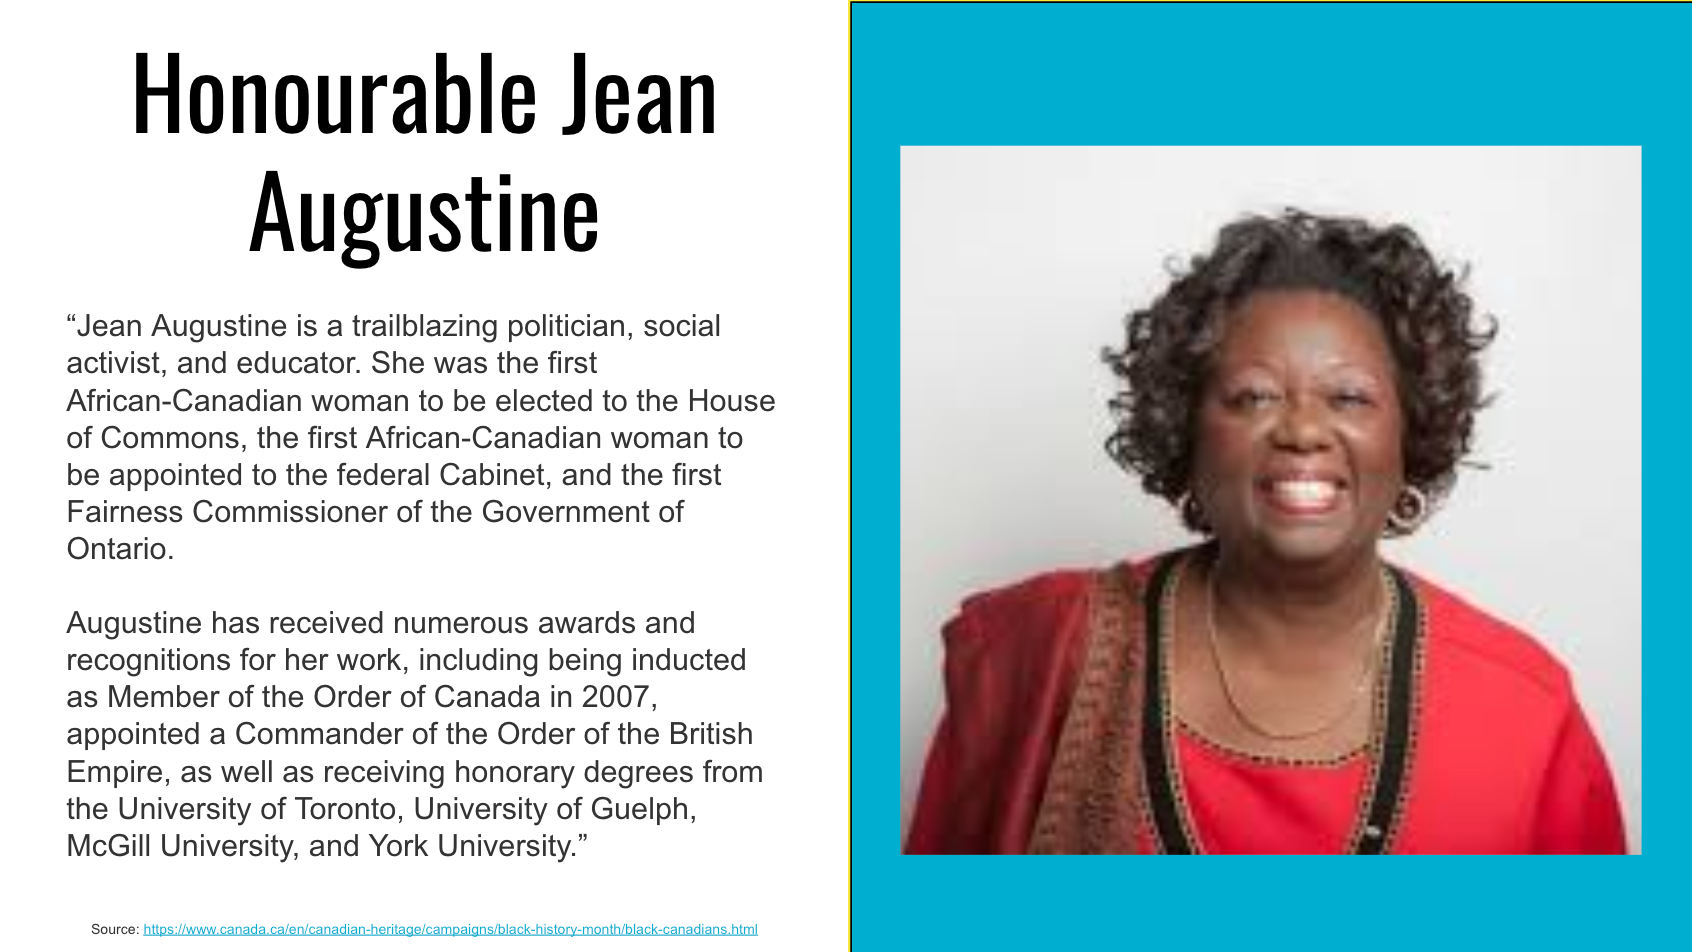 Honourable Jean Augustine